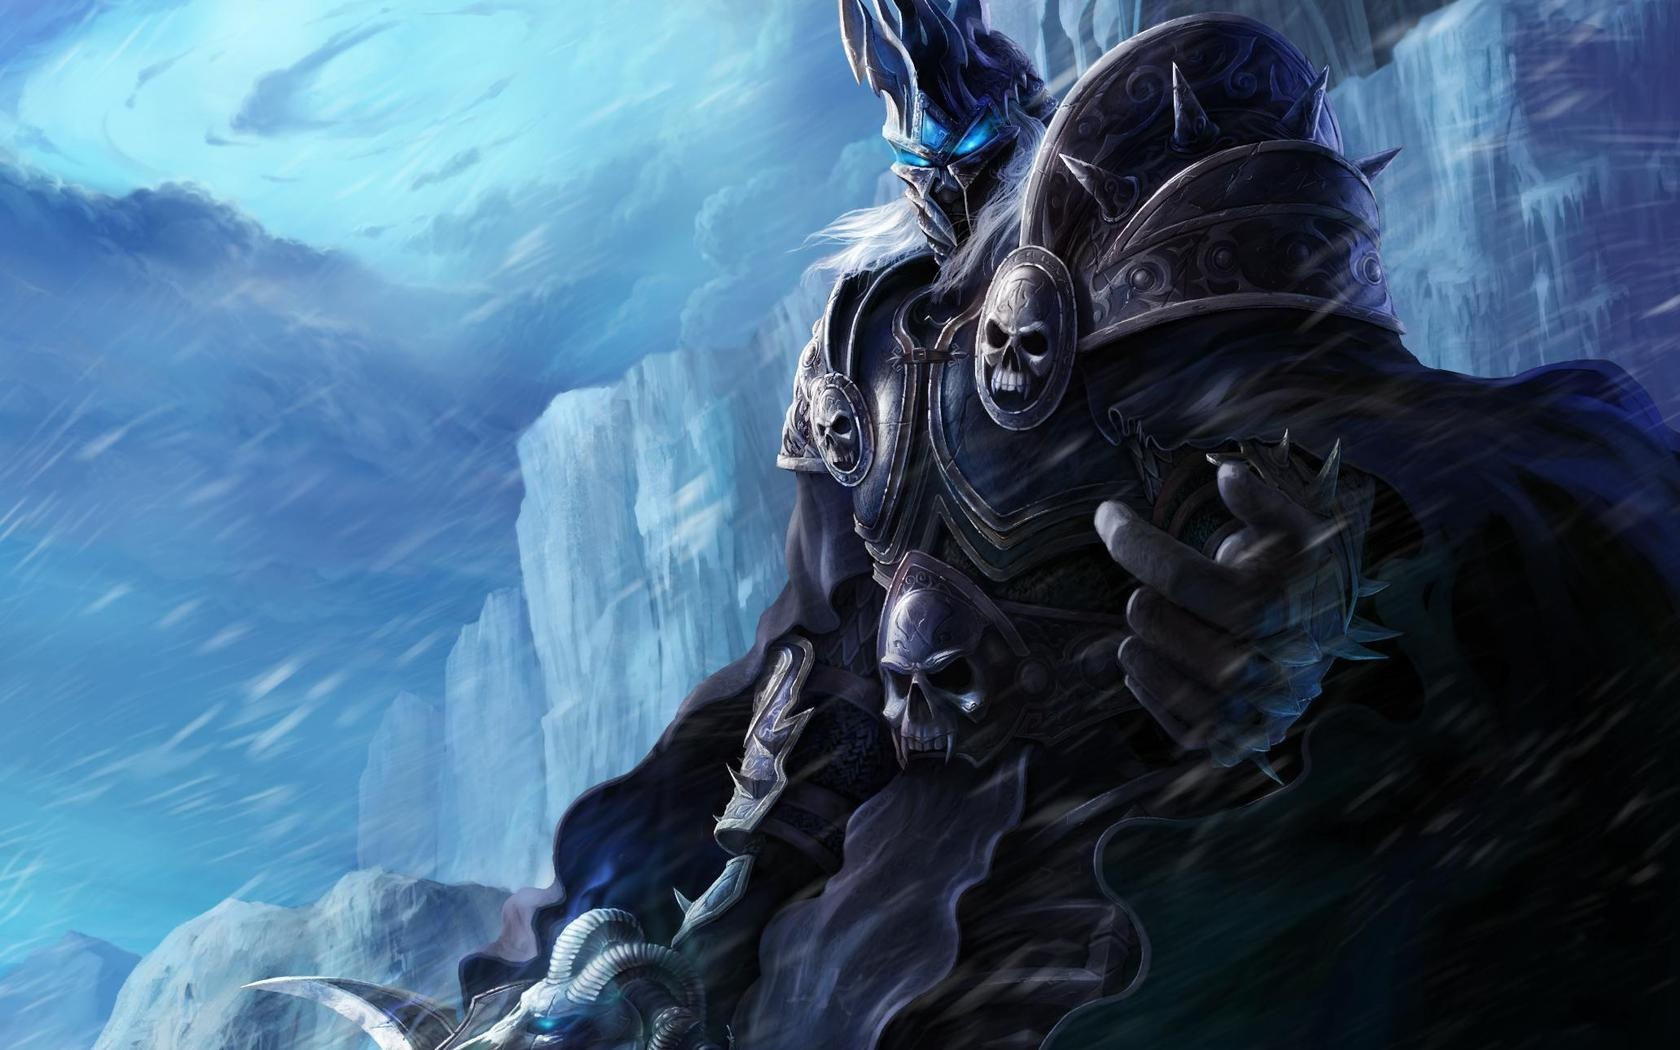 World of warcraft the lich king 1680 x 1050 download close